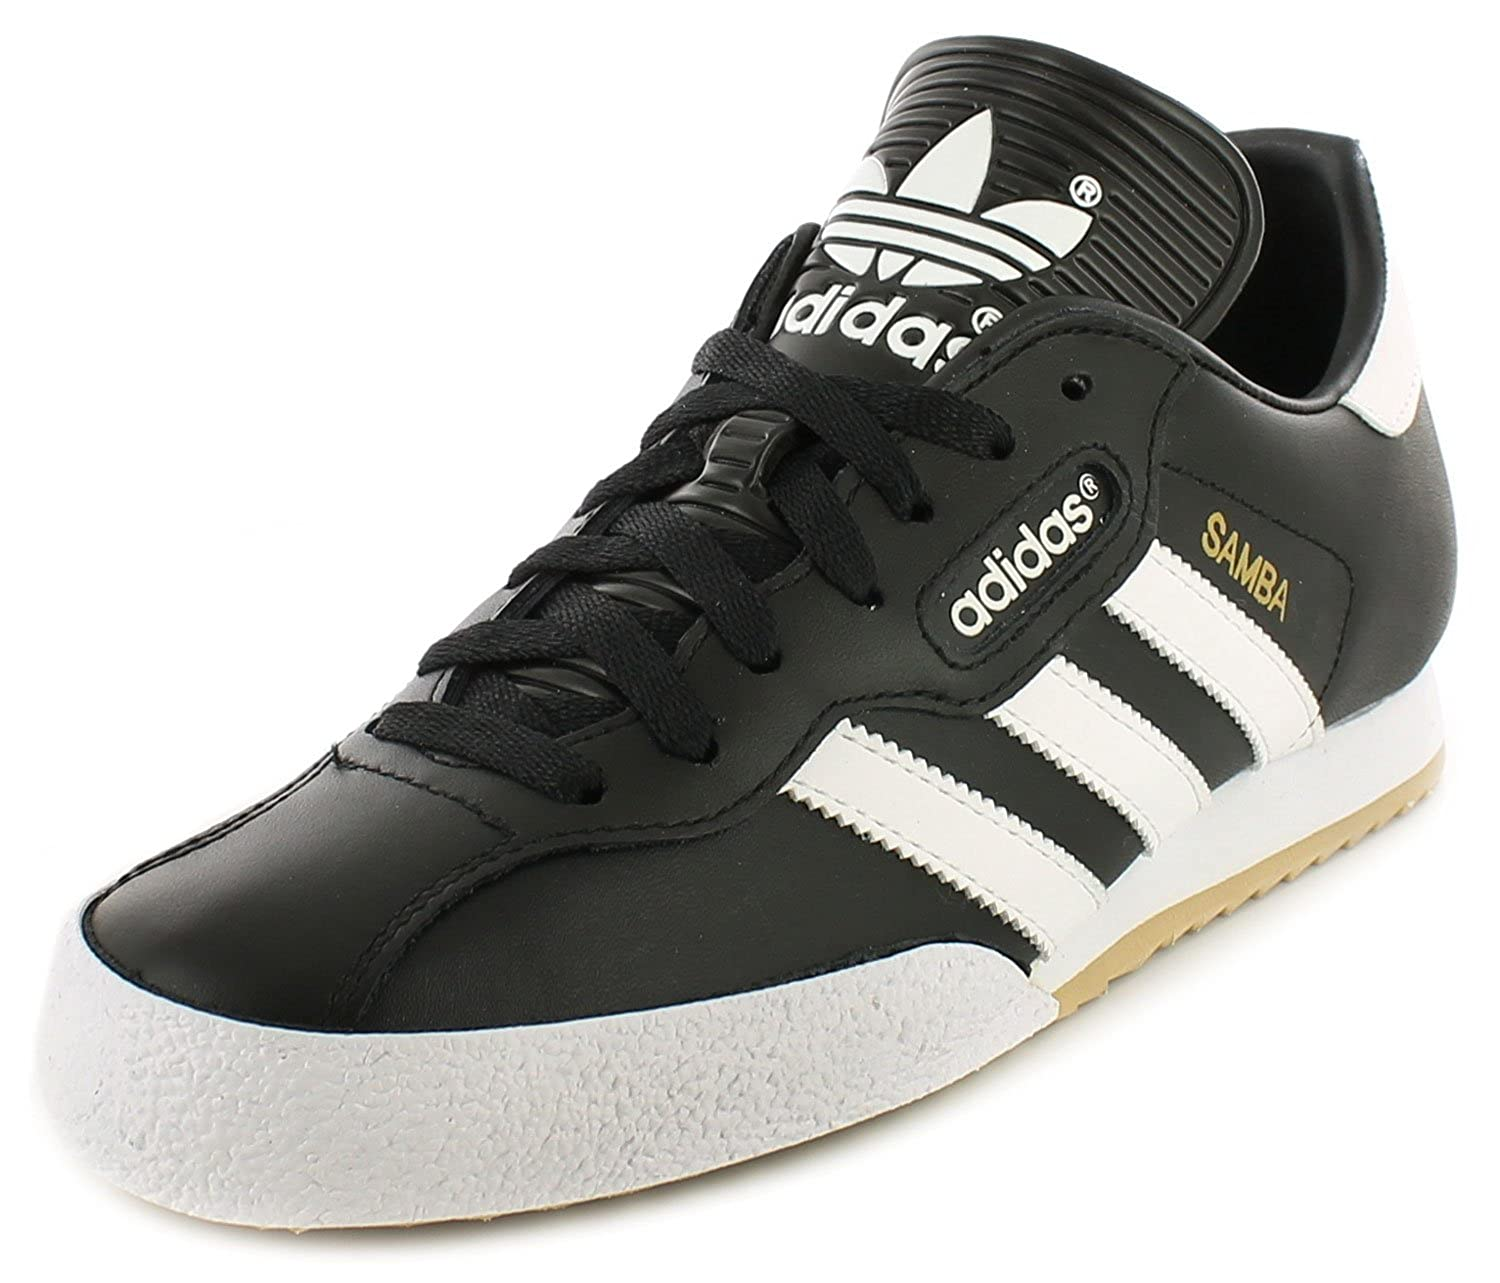 sale retailer 5574e 749d5 adidas Samba Super Black Textile Leather Indoor Soccer Shoes Trainers -  Black White - UK SIZES 6-12  Amazon.co.uk  Shoes   Bags